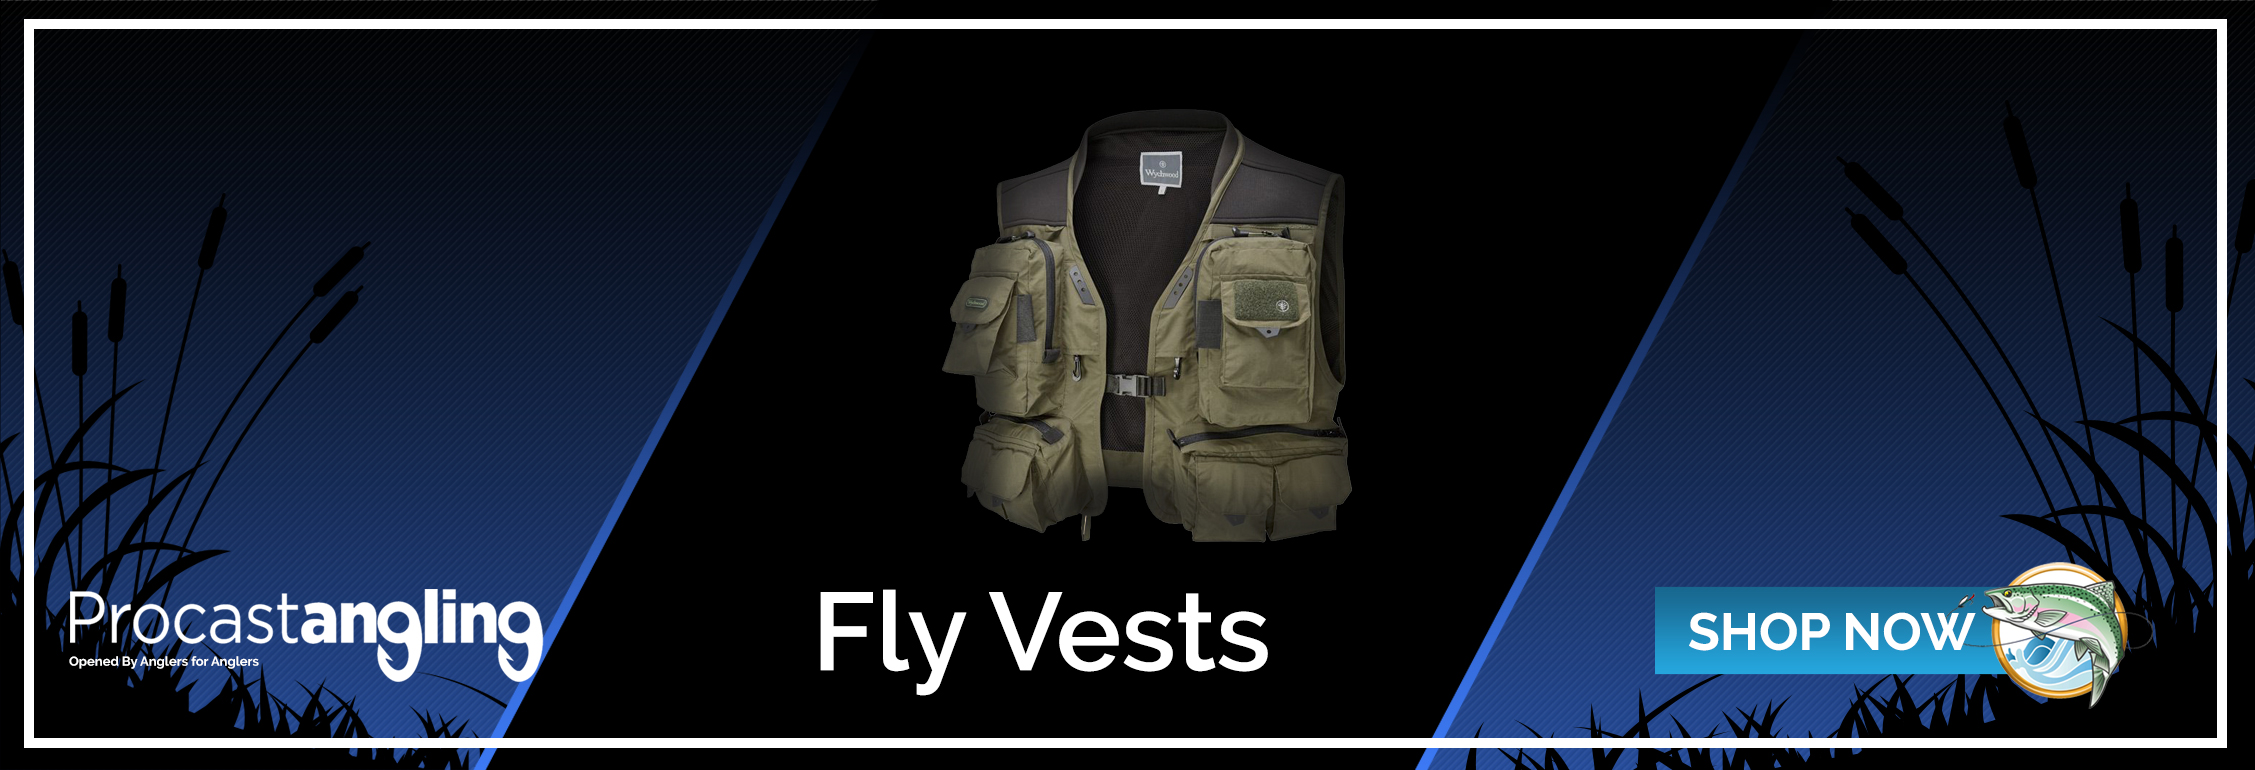 FLY VESTS